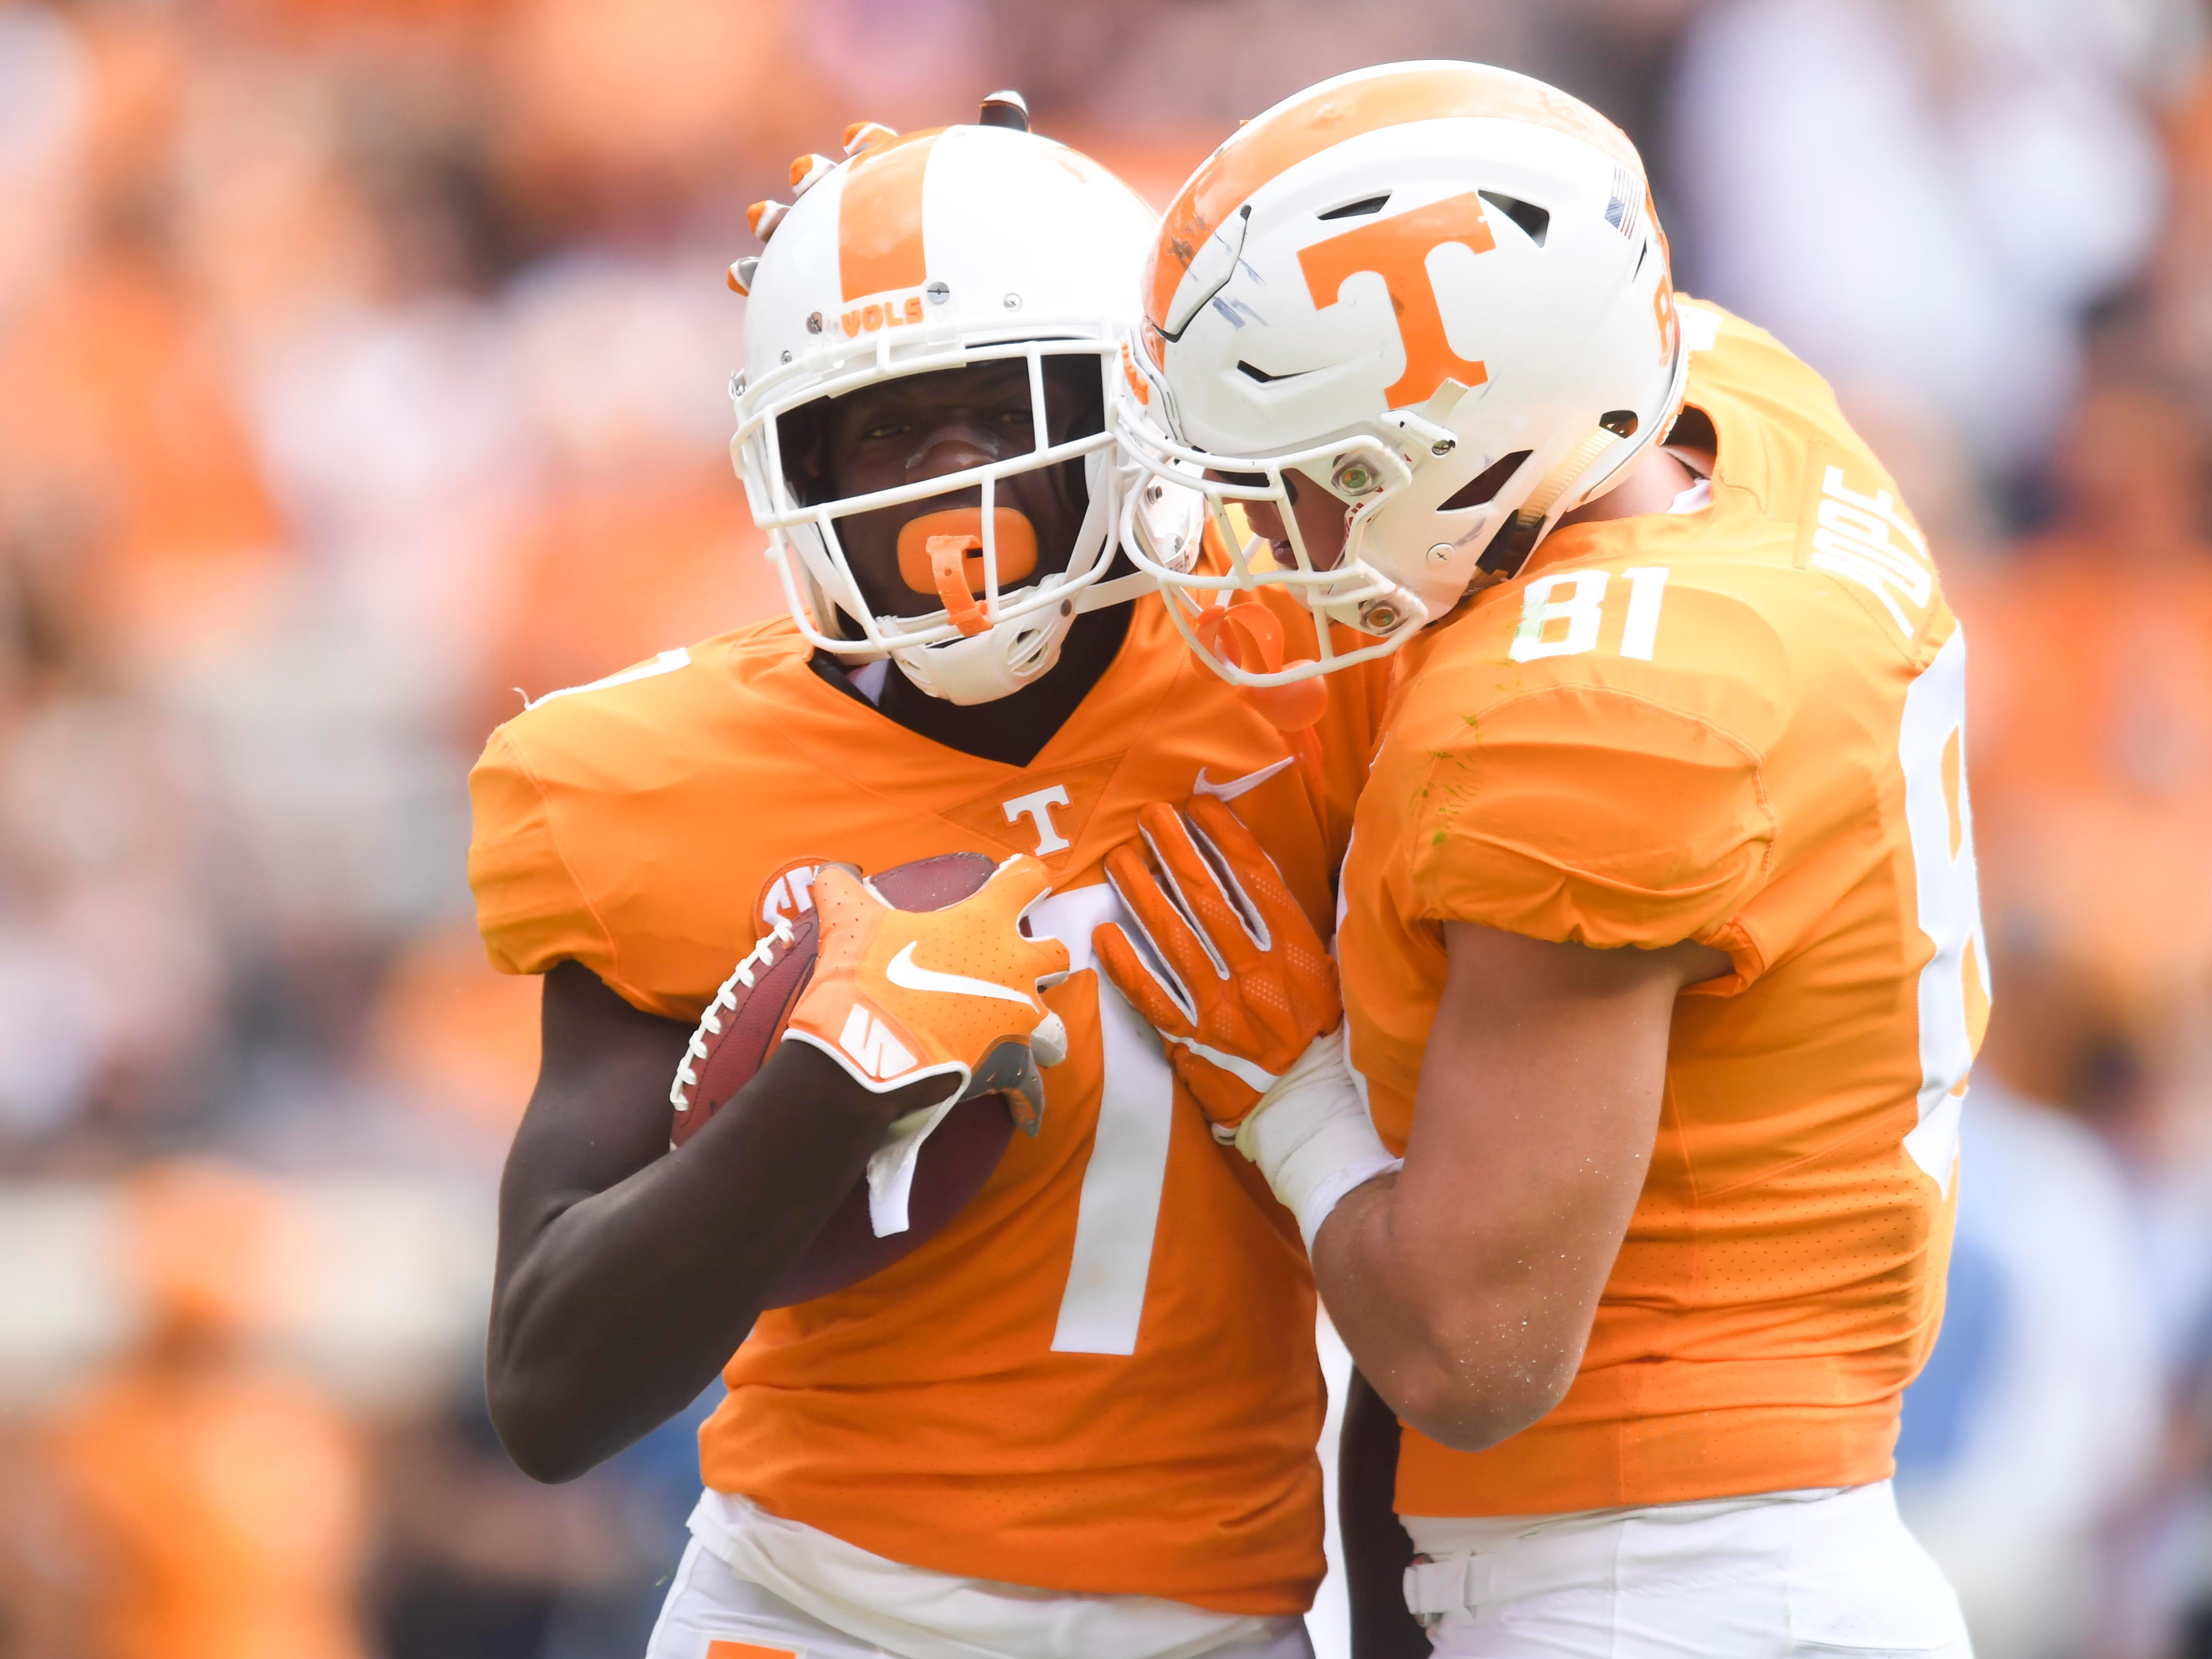 Tennessee wide receiver Brandon Johnson (7) is congratulated by tight end Austin Pope (81) after Johnson made a reception during the game against UTEP on Saturday, September 15, 2018.